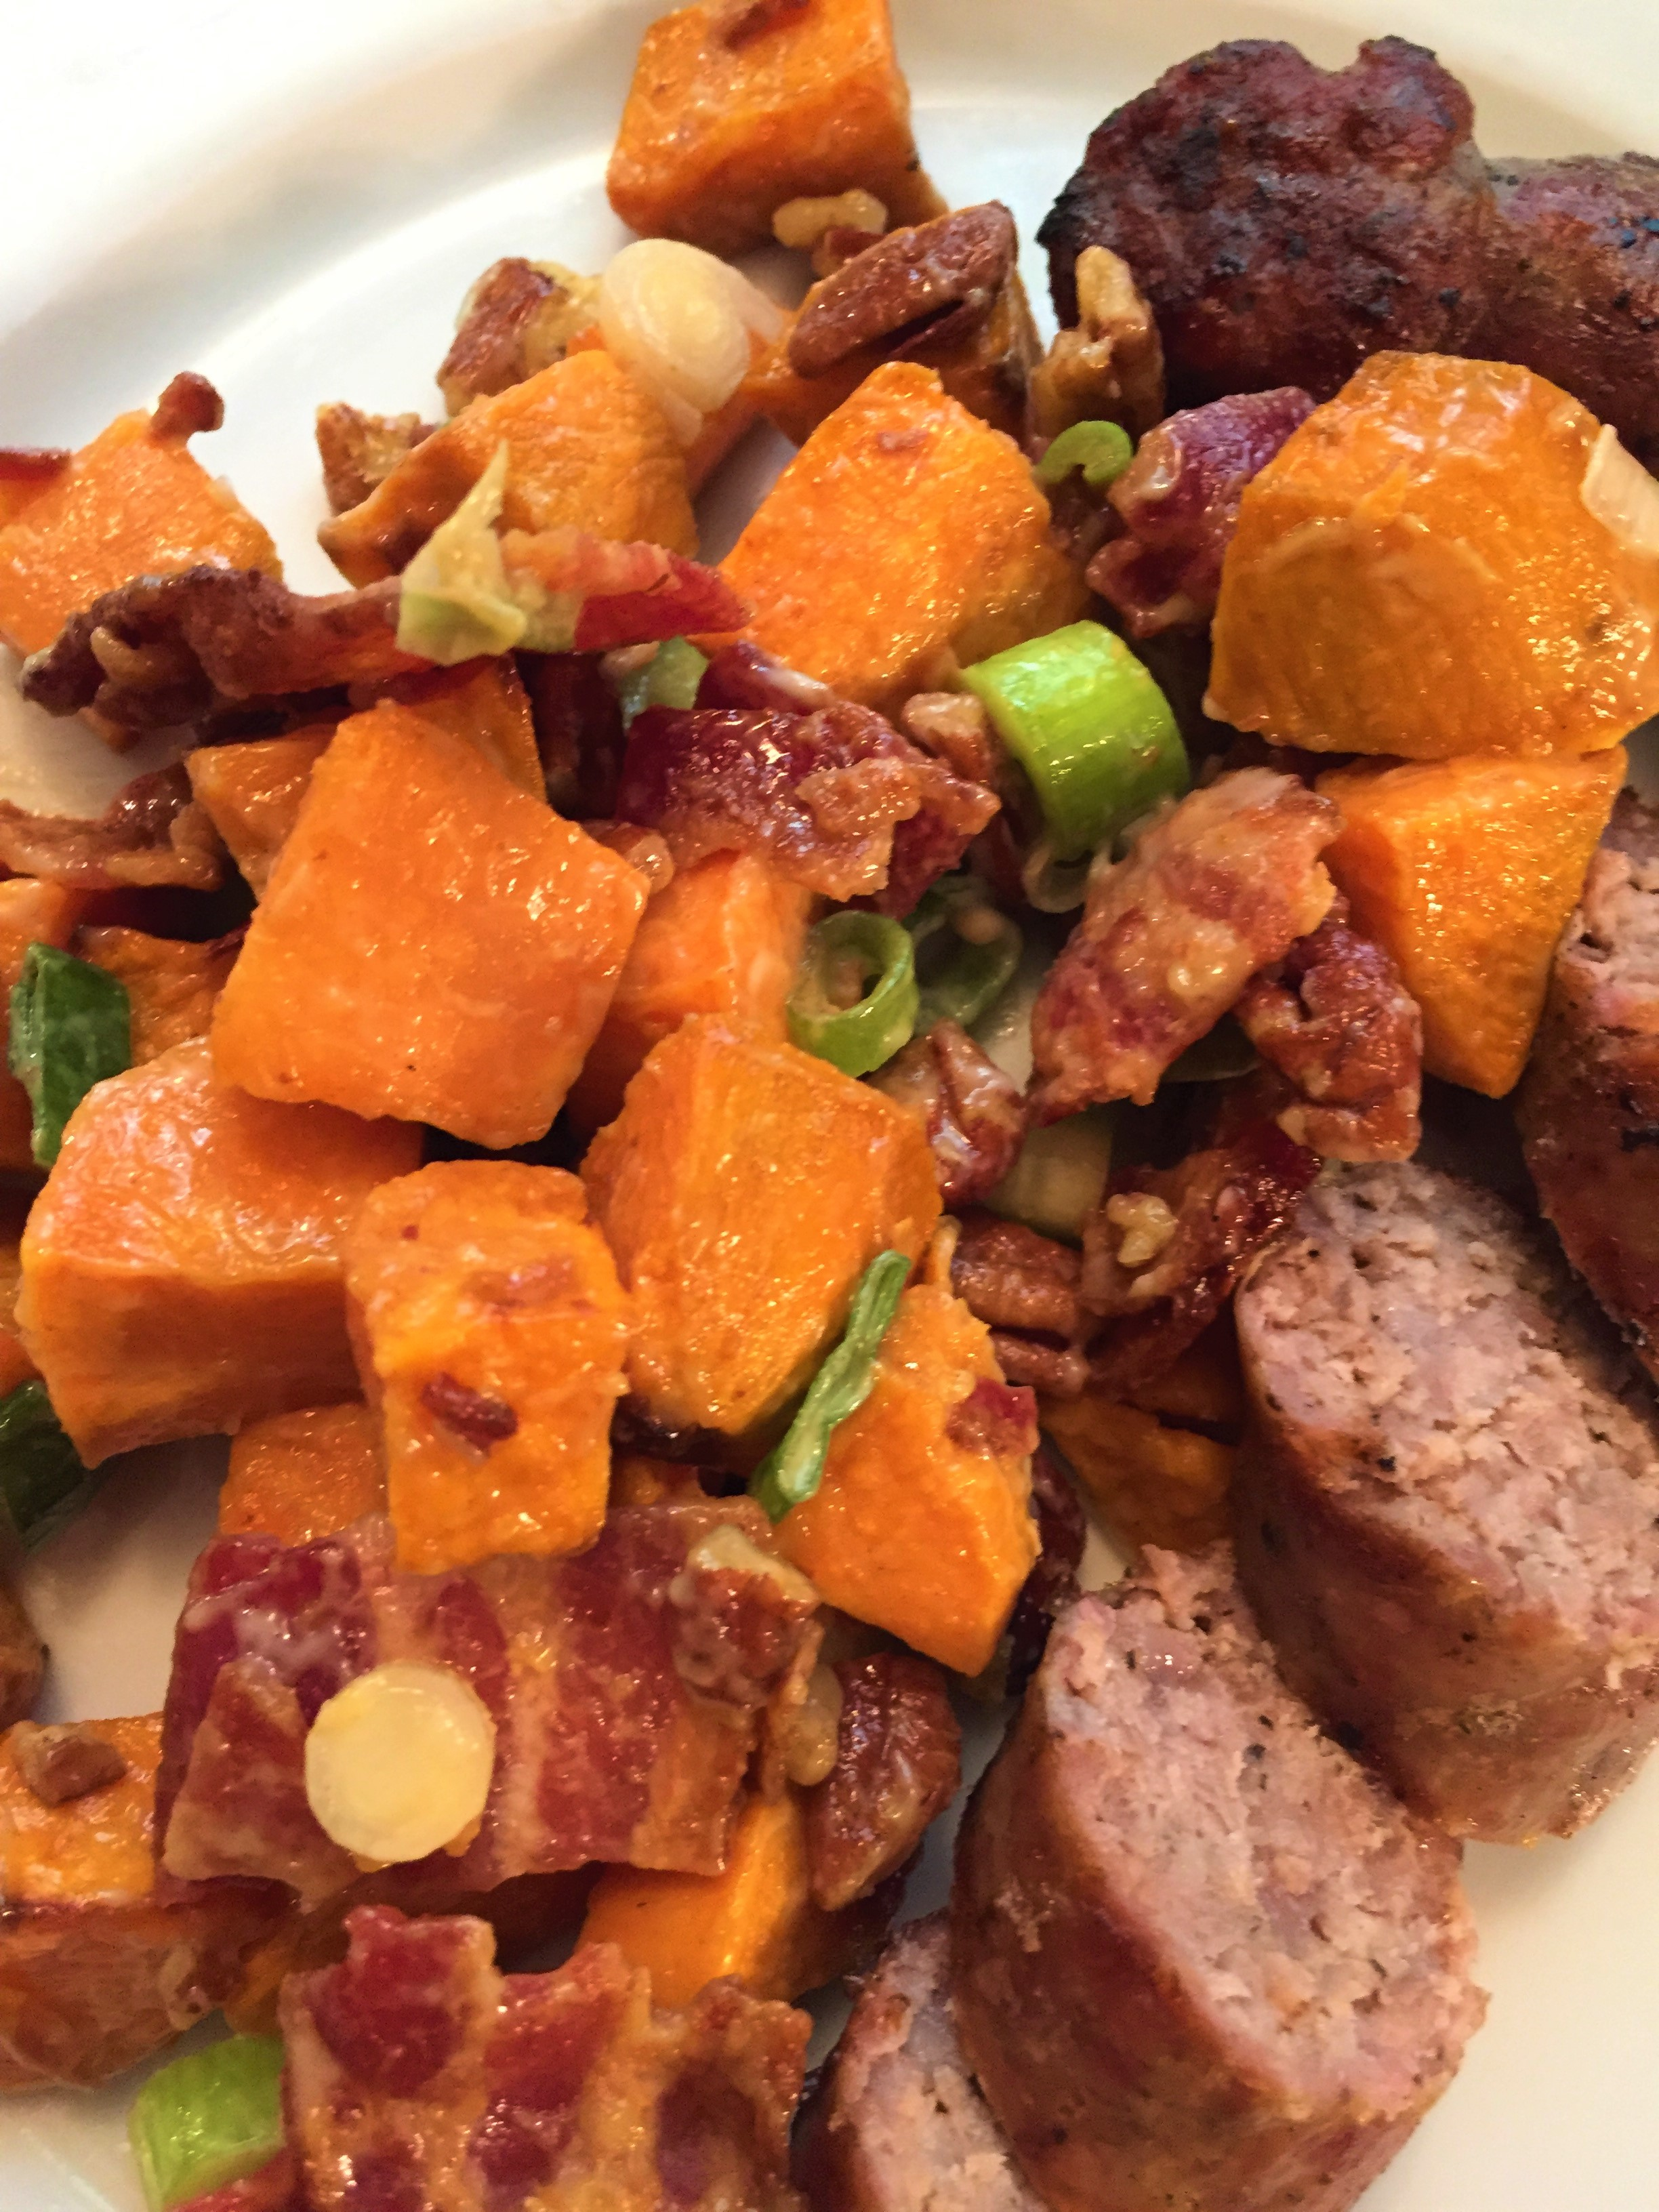 Cathy's Sweet Potato Salad (served with sausages)